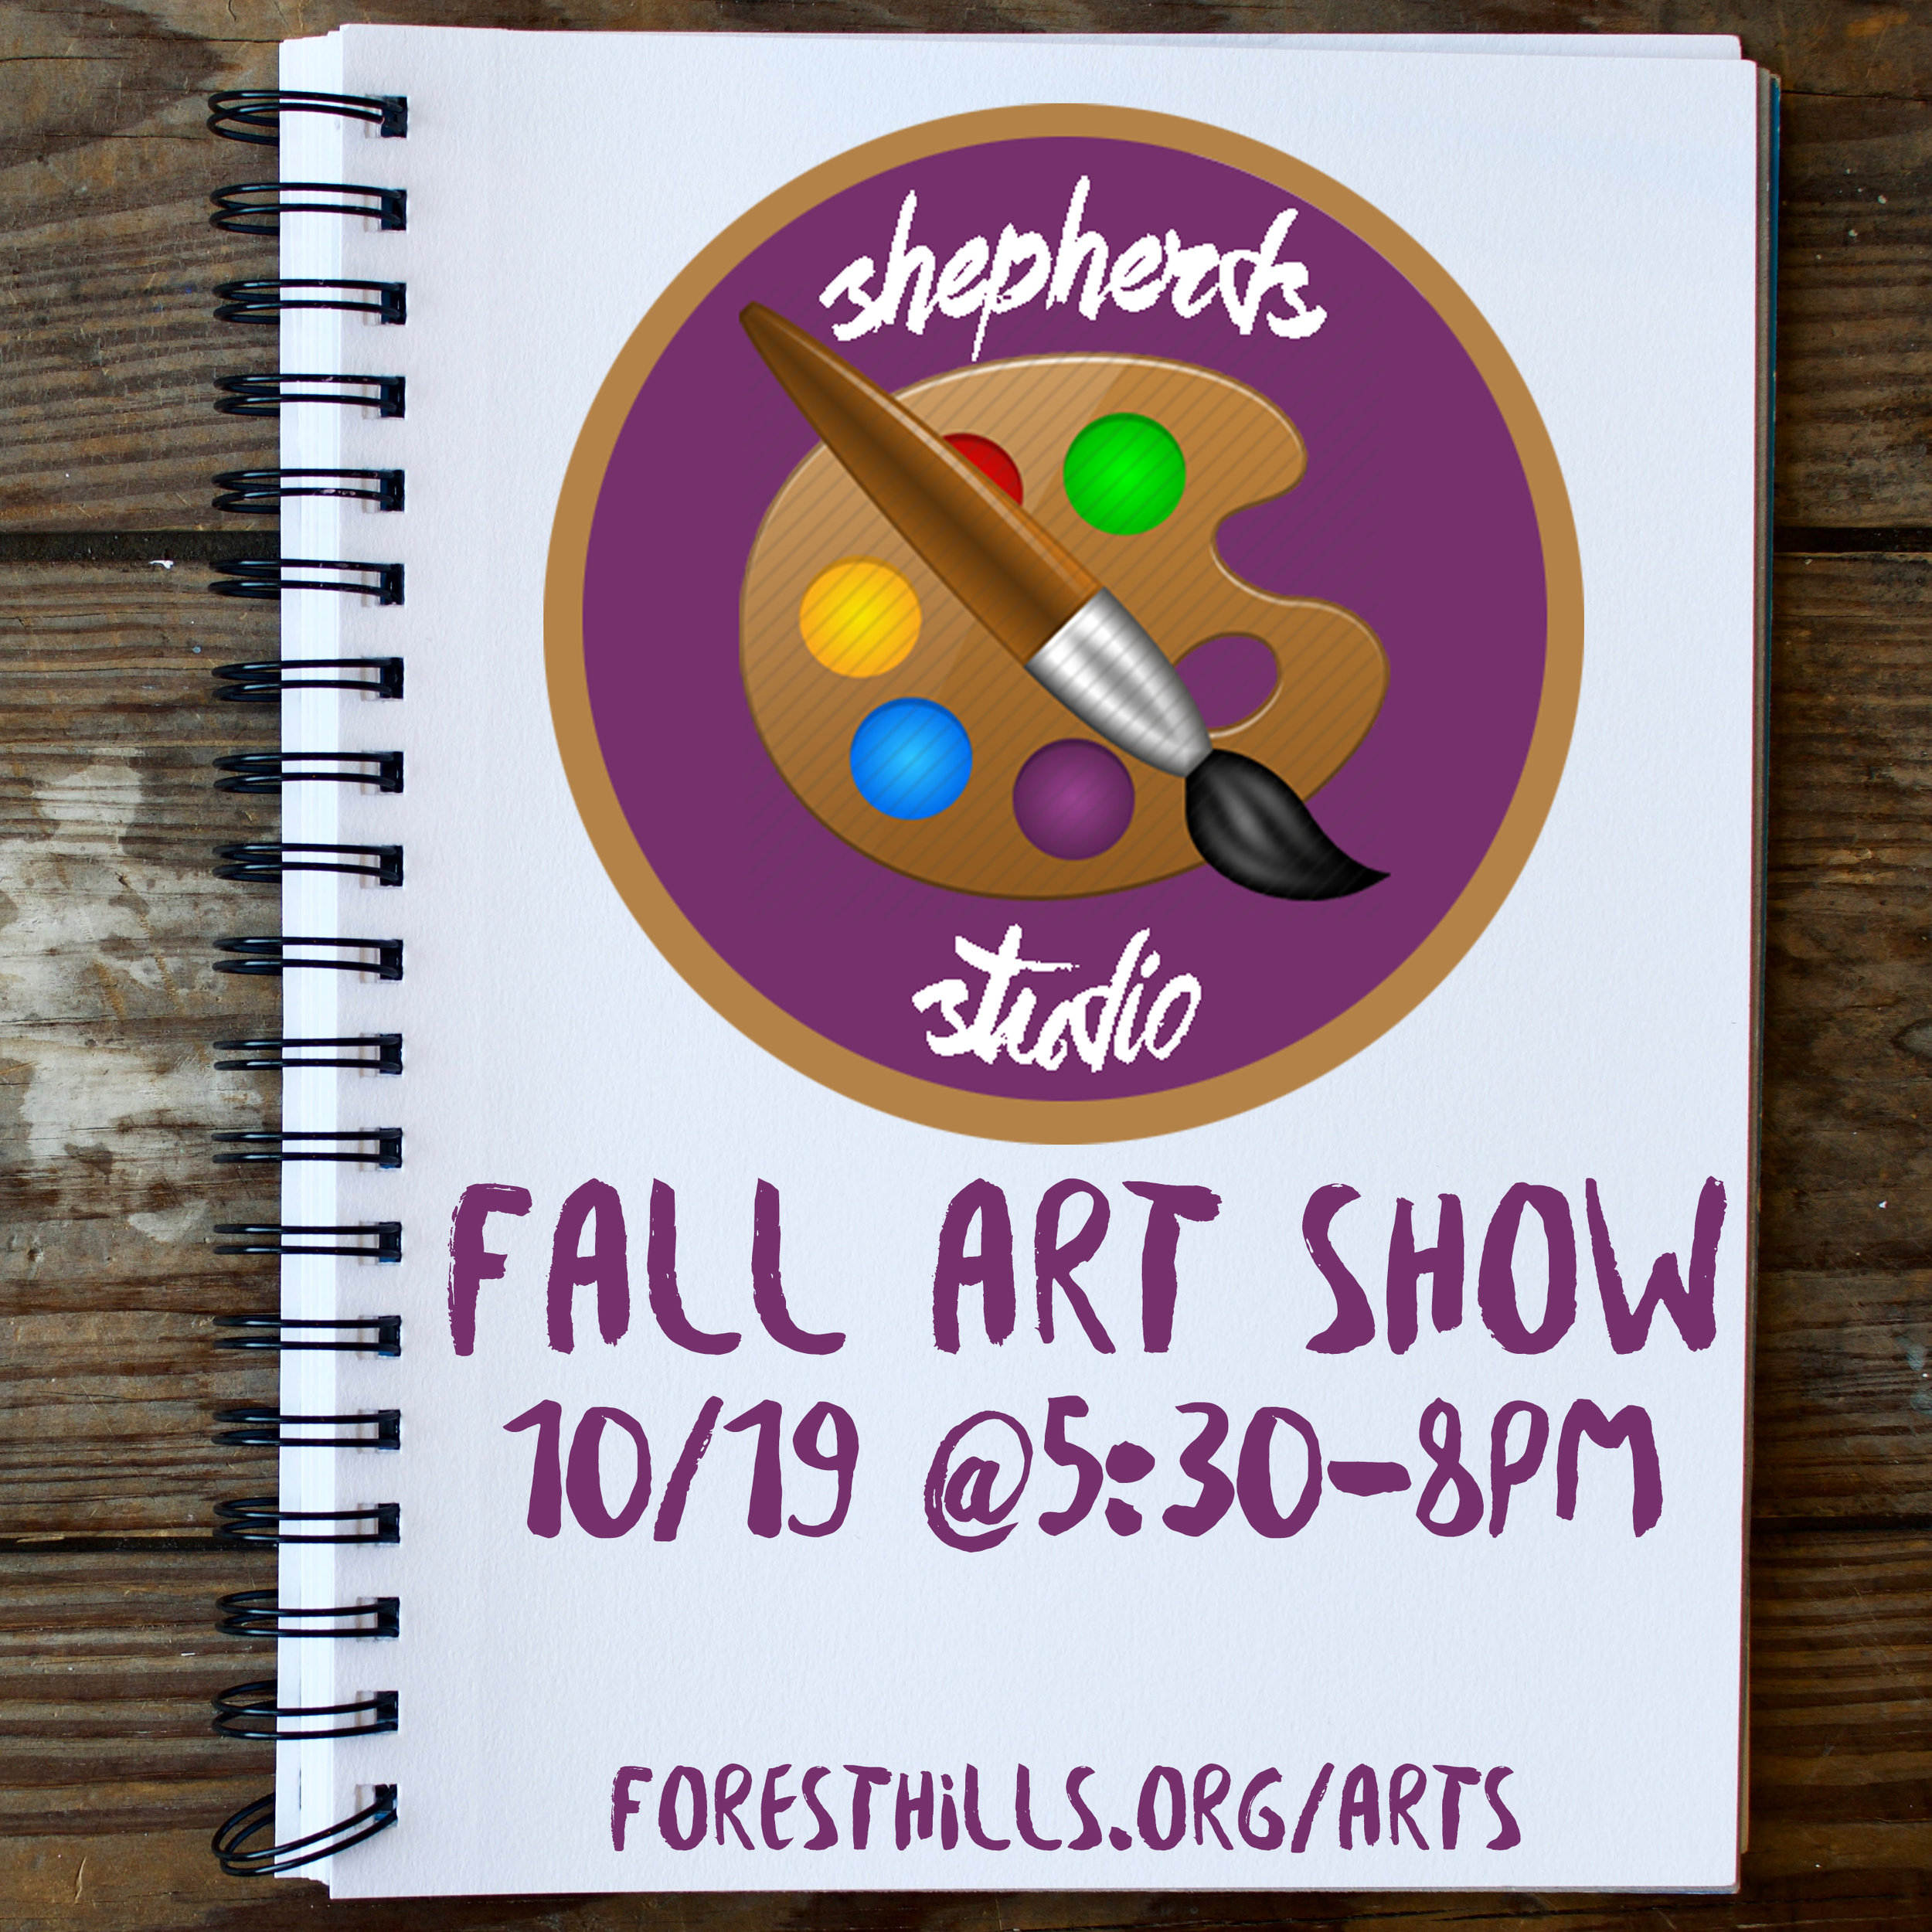 The Arts Ministry of Forest Hills is excited to announce its Annual fall Art Show on Wed. 10/19 from 5:30- 8:00 pm at Shepherd's Studio (102 Shepherd St). Come enjoy an evening of art and support this creative ministry!